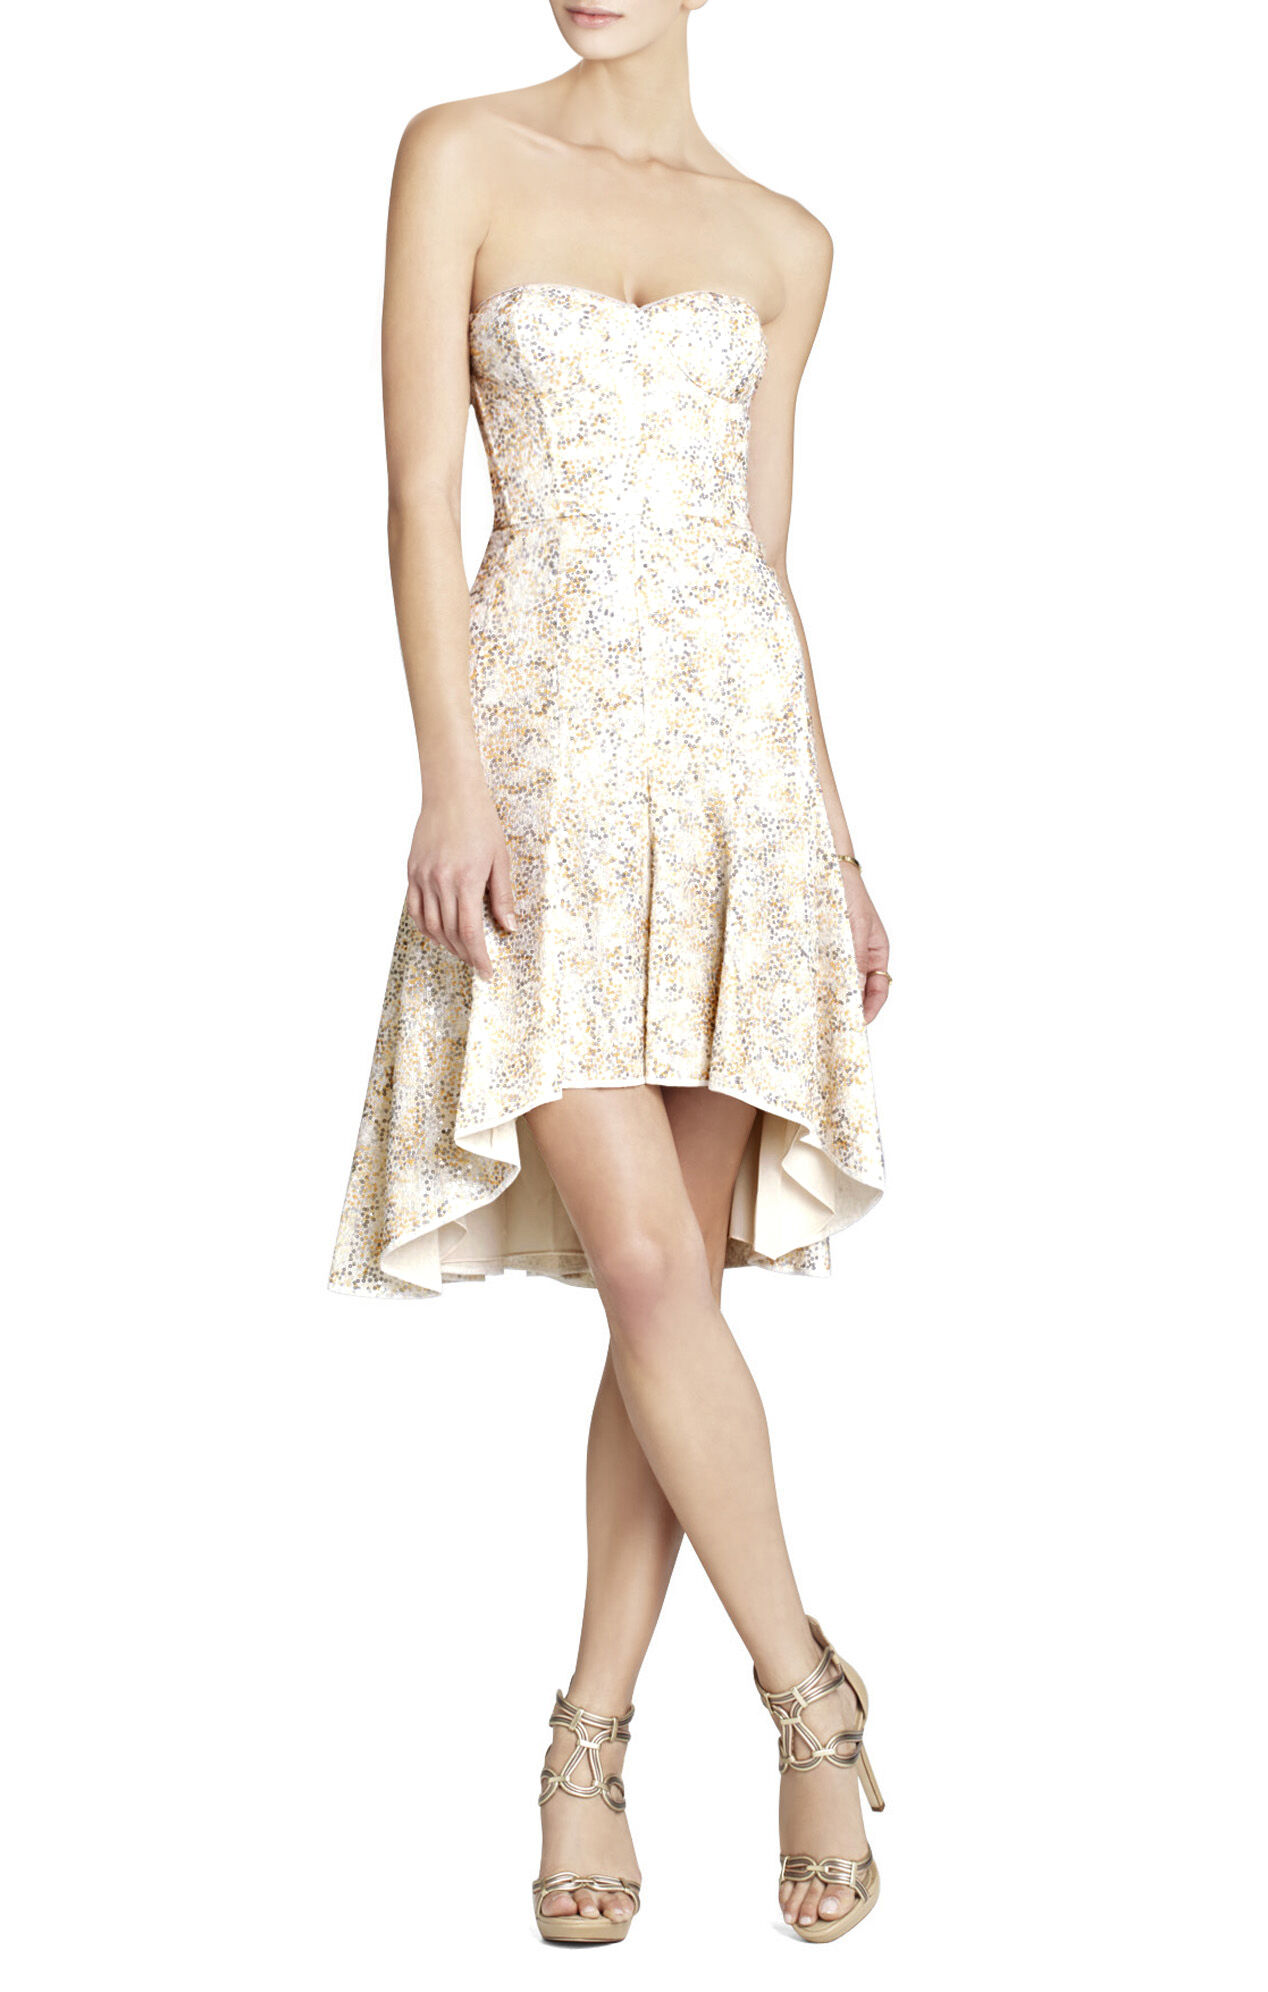 Bryleigh Strapless Sequined Lace Dress